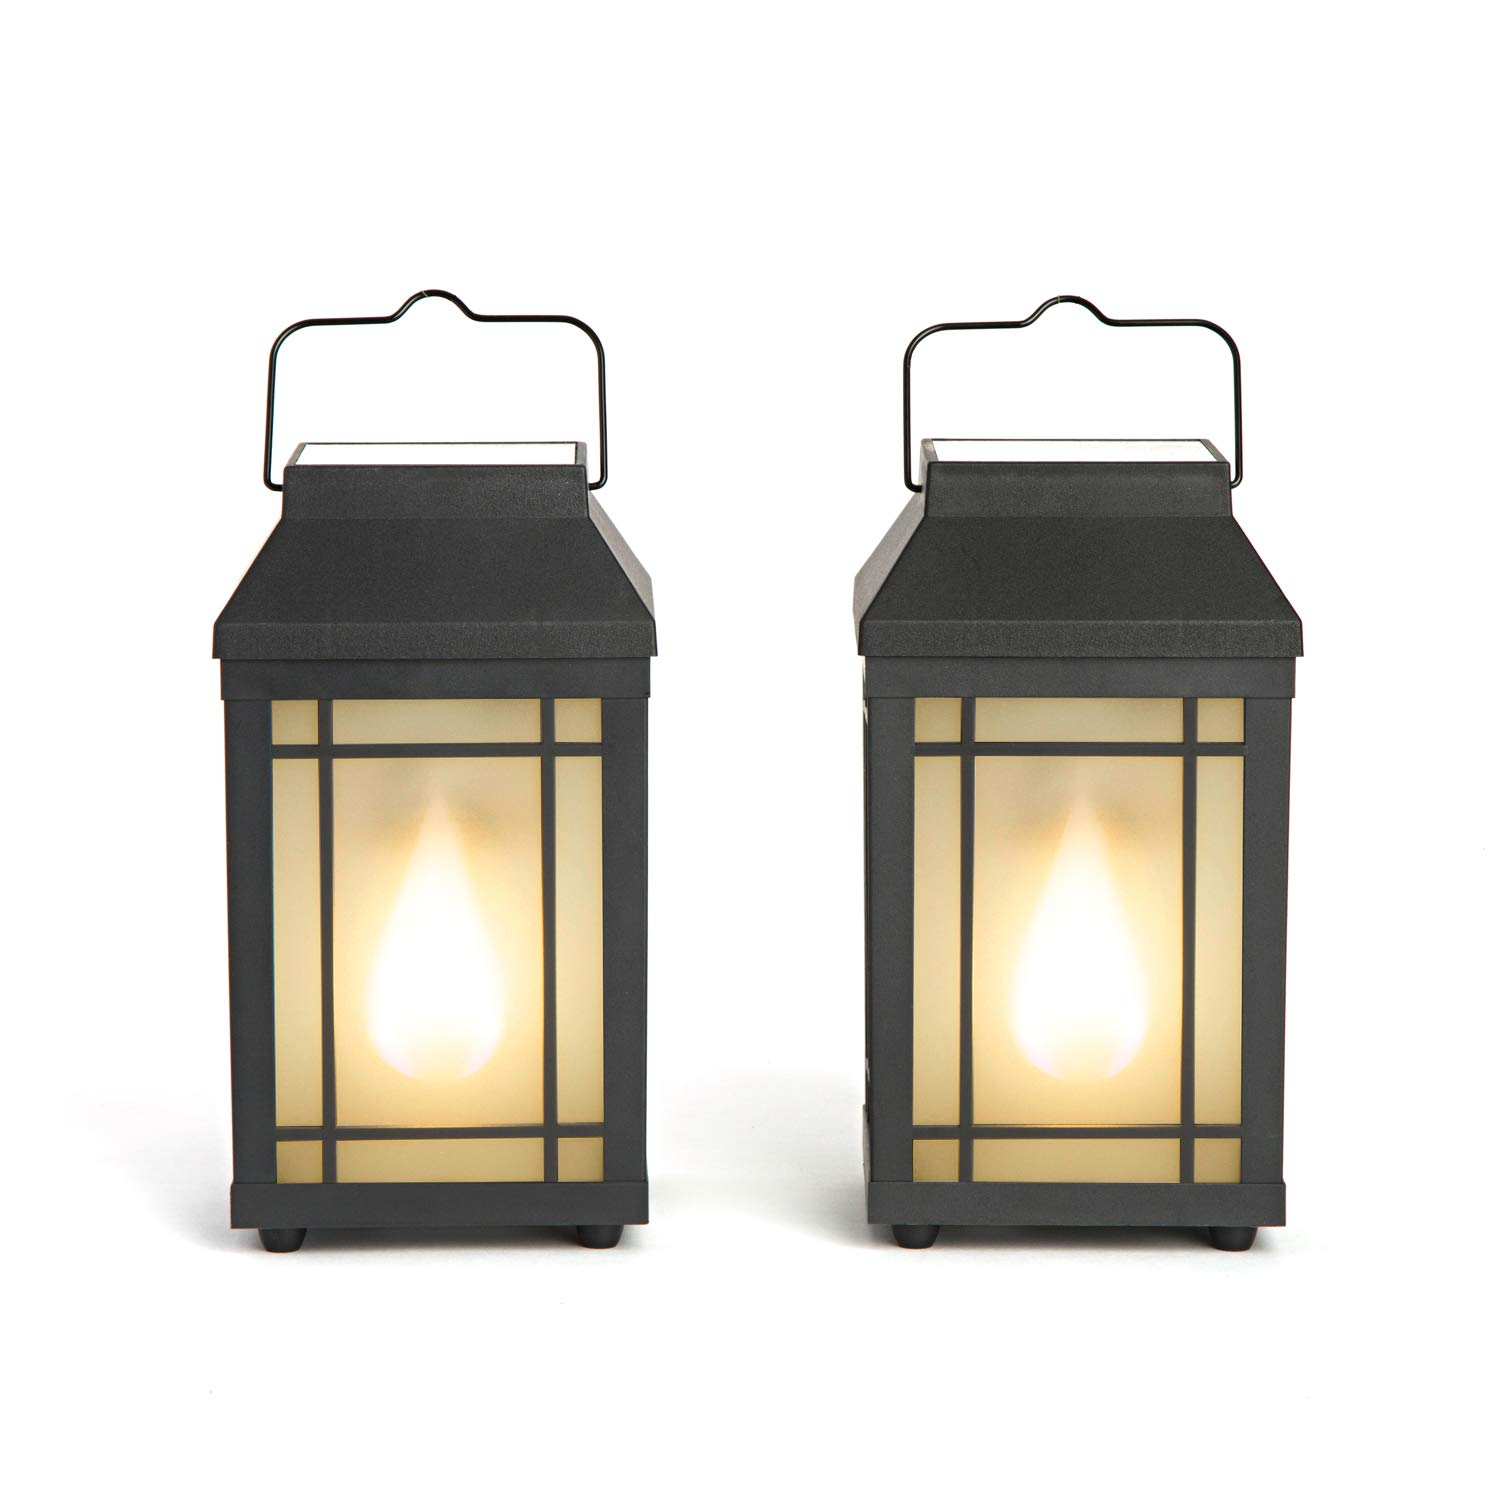 Outdoor Solar Lanterns with Flickering Flame - Set of 2 Solar-Powered Pathway Lights, Realistic Torch Fire Effect, for Decorative Outdoor Lighting by LampLust